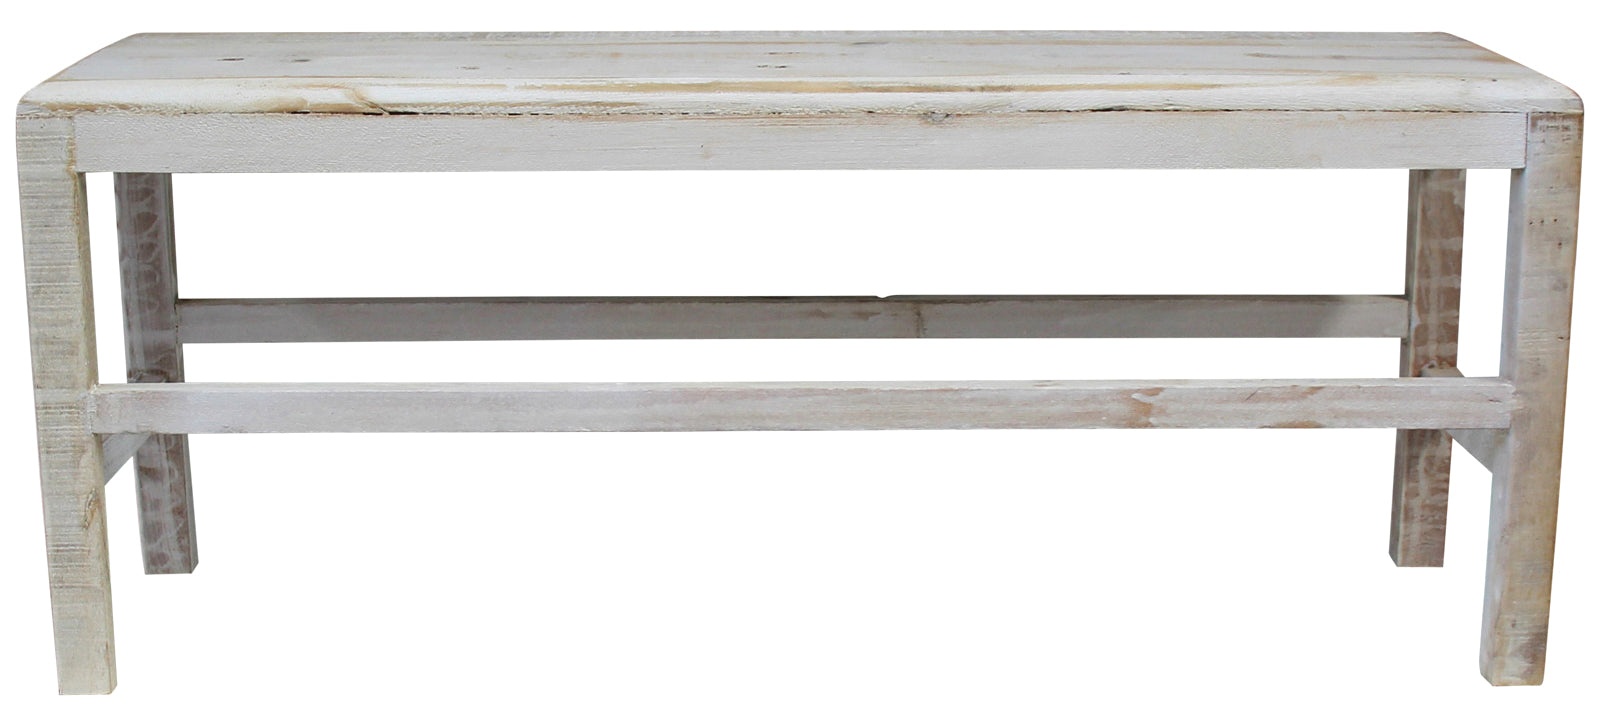 Bench Timber Whitewash Medium